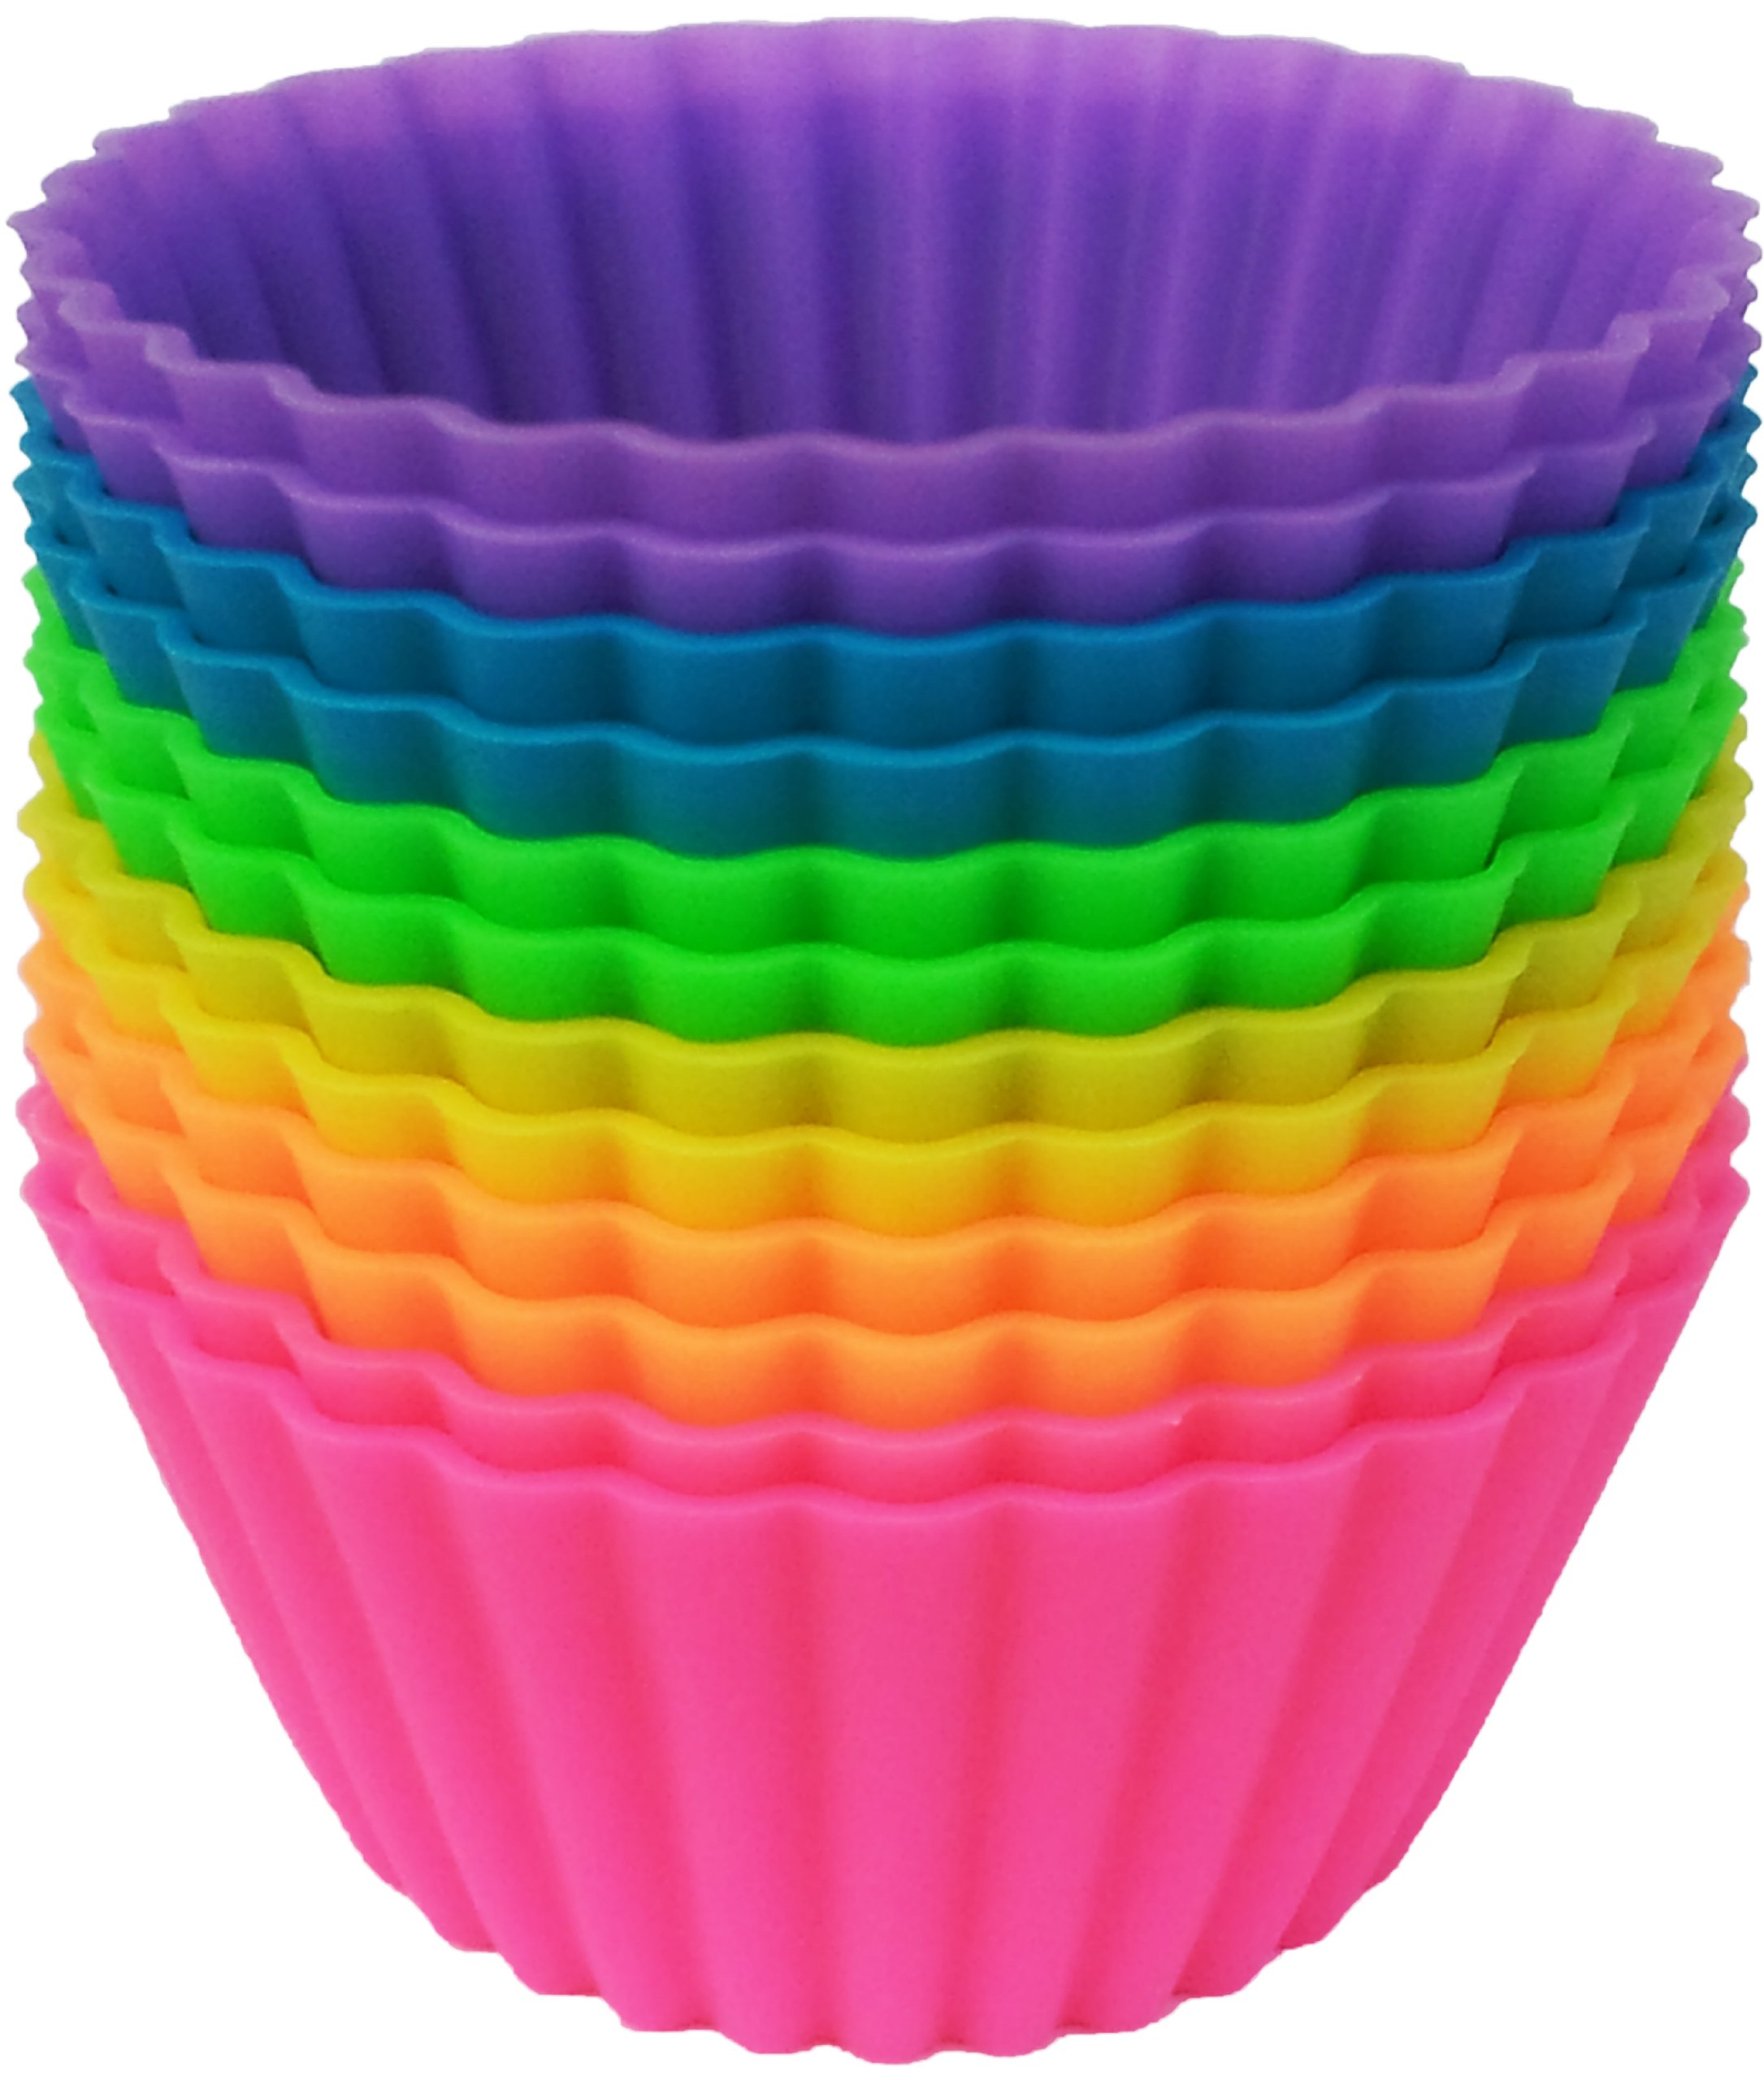 Pantry Elements Jumbo Silicone Muffin Cups - 12 Large 3-5/8 inch Baking Liners in Storage Jar